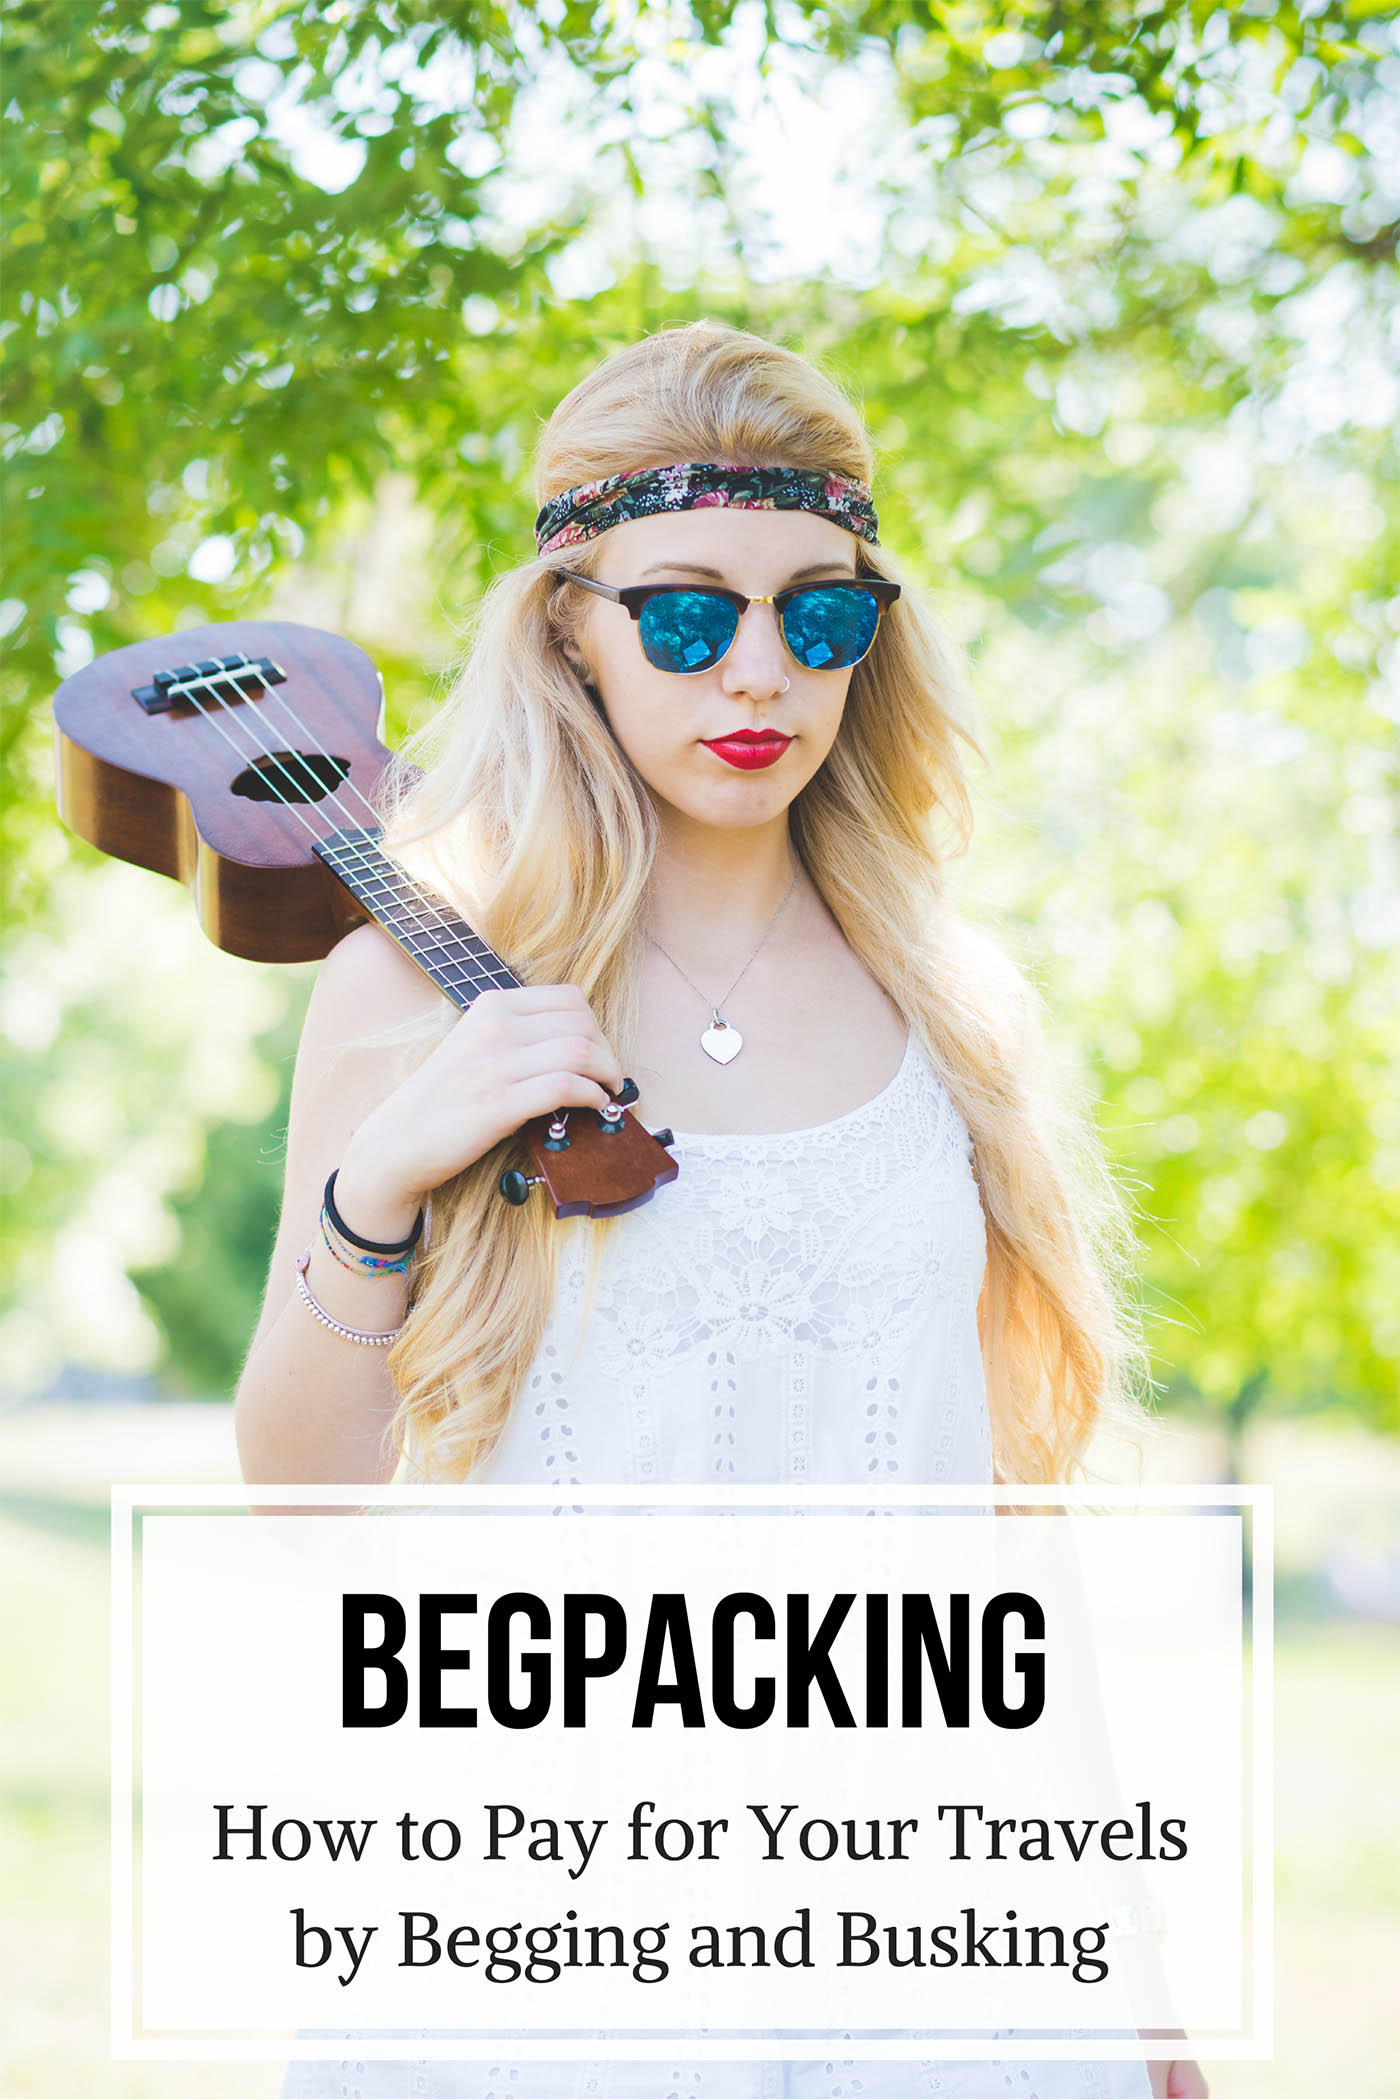 Begpacking: How to Pay for Your Travels by Begging and Busking